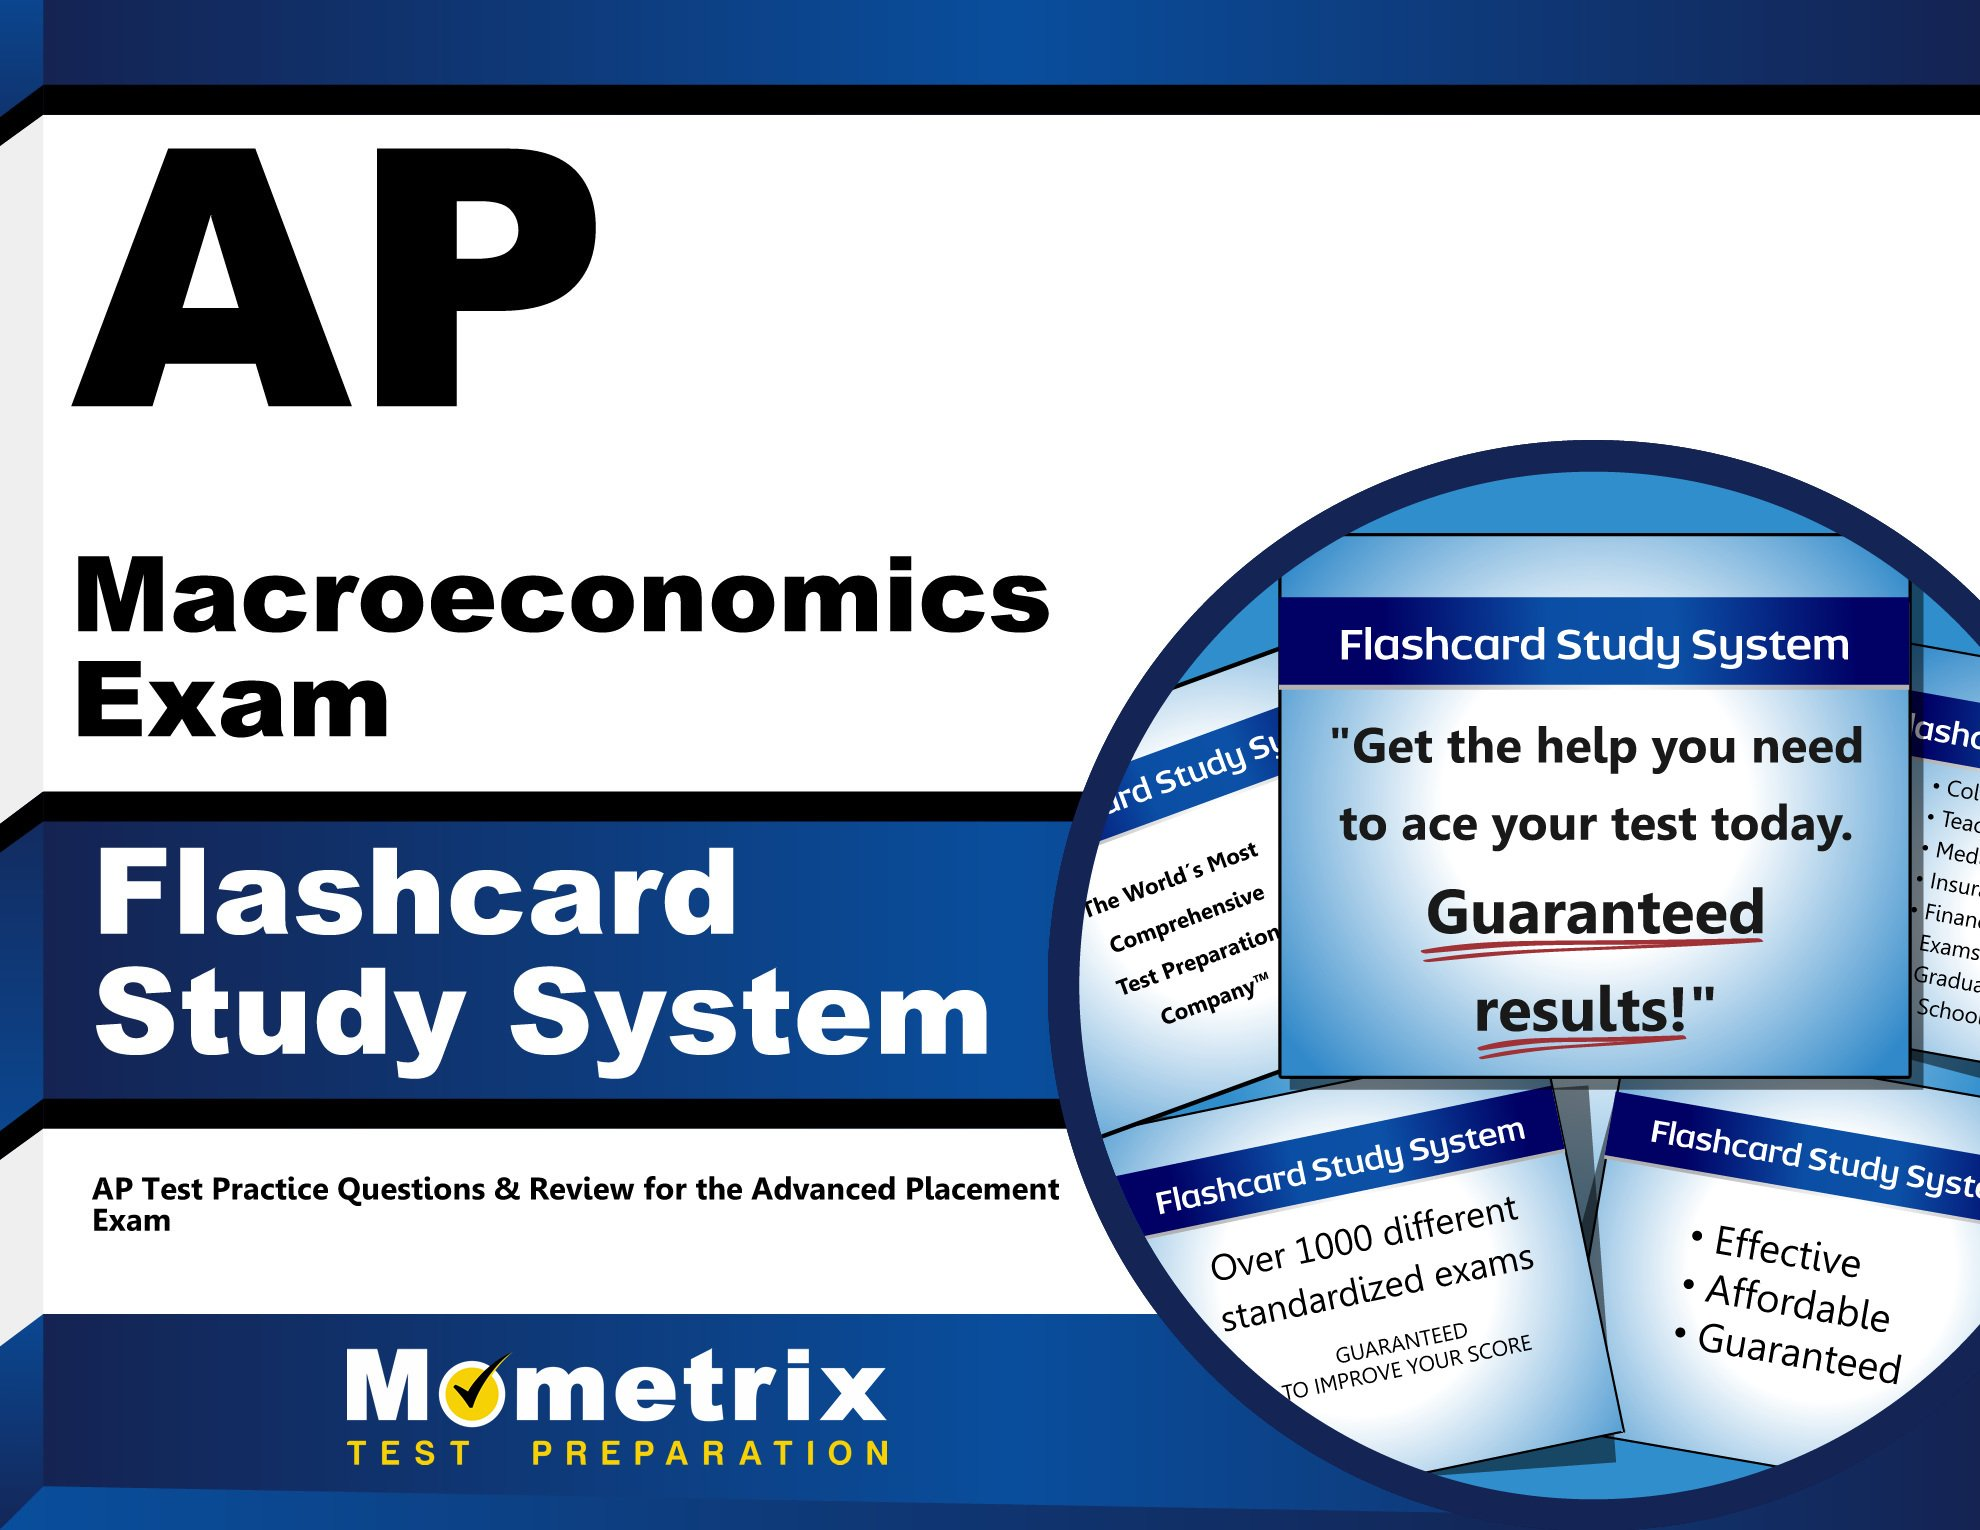 AP Macroeconomics Exam Flashcard Study System: AP Test Practice Questions & Review for the Advanced Placement Exam (Cards)